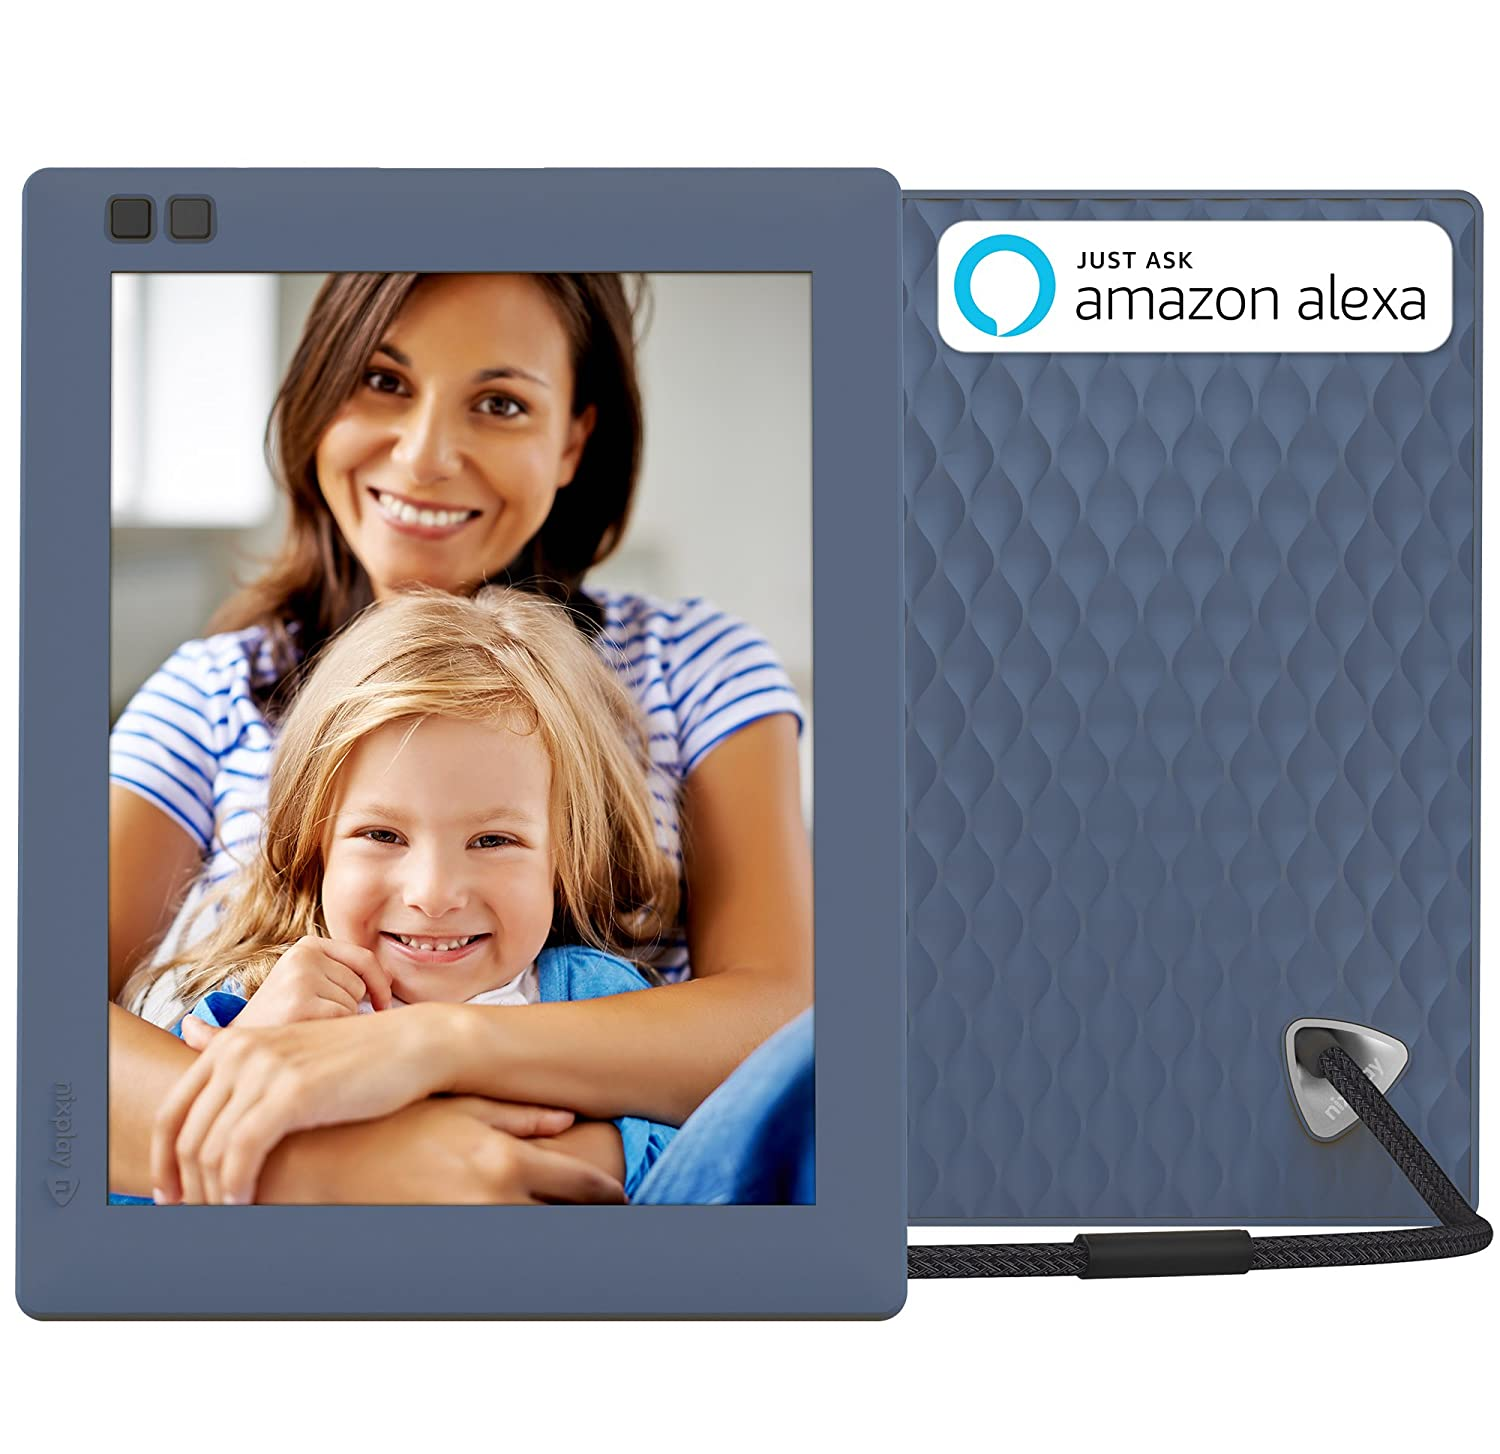 Nixplay Seed 8 Inch WiFi Digital Photo Frame with Mobile App, 10GB Online Storage, Alexa Integration and Motion Sensor – Blue (W08D)